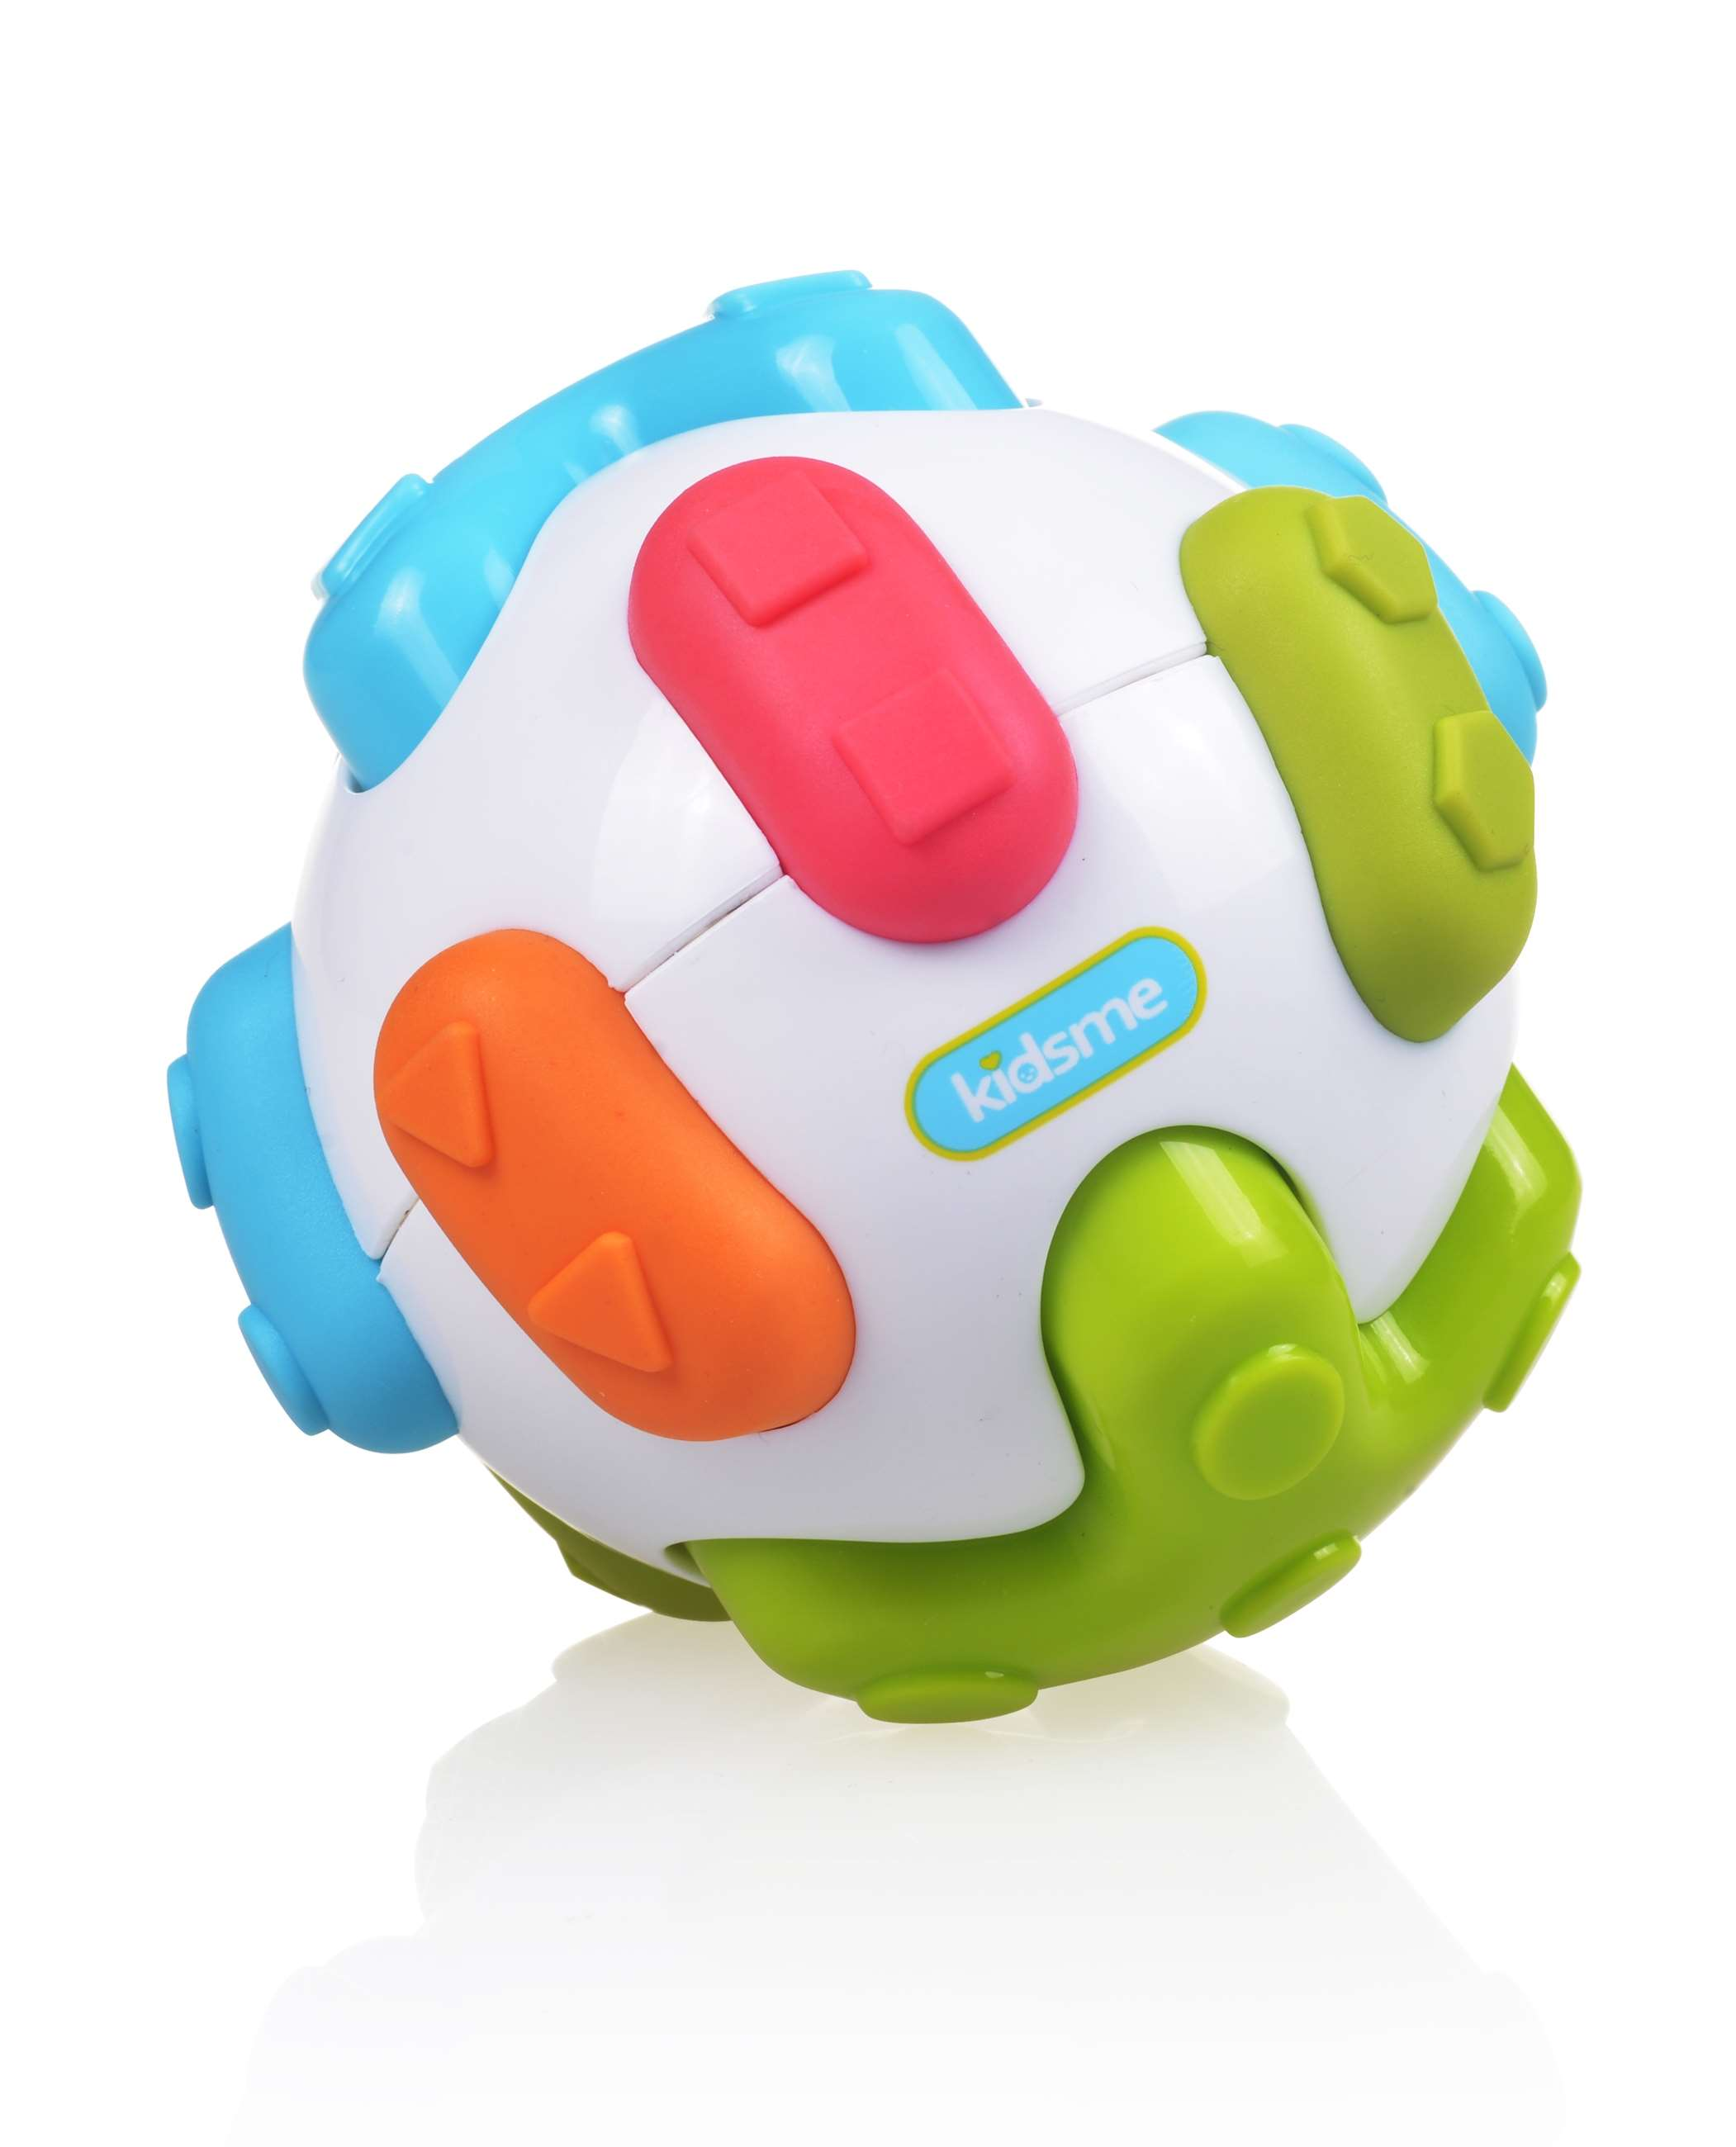 2631 - kidsme soft grip listen and learn ball - 9278-01